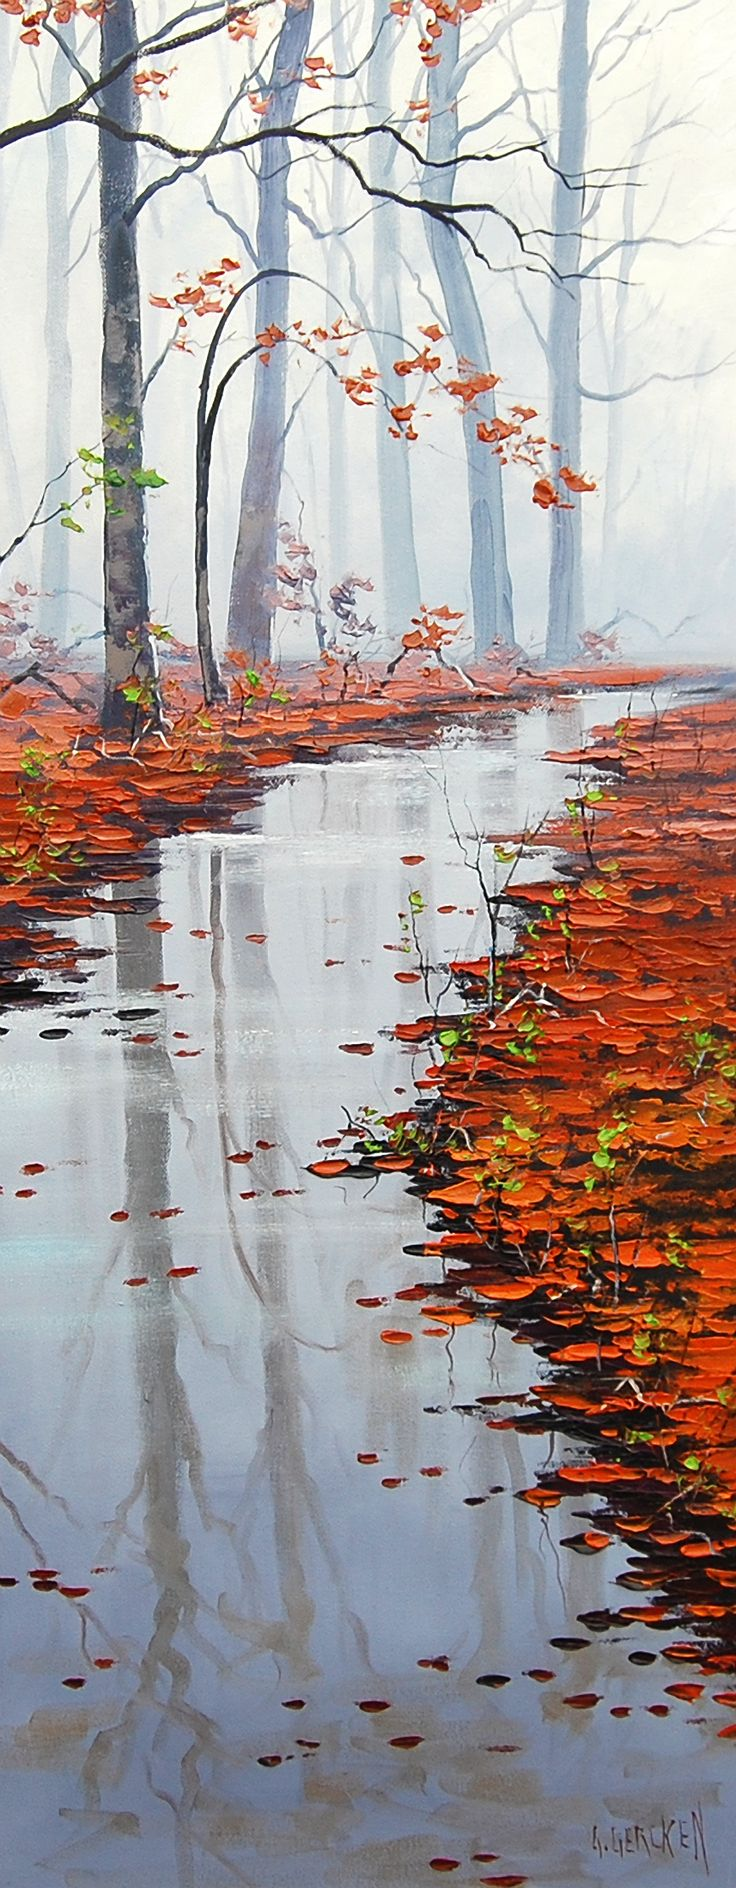 Last Autumn days by ~artsaus on deviantART